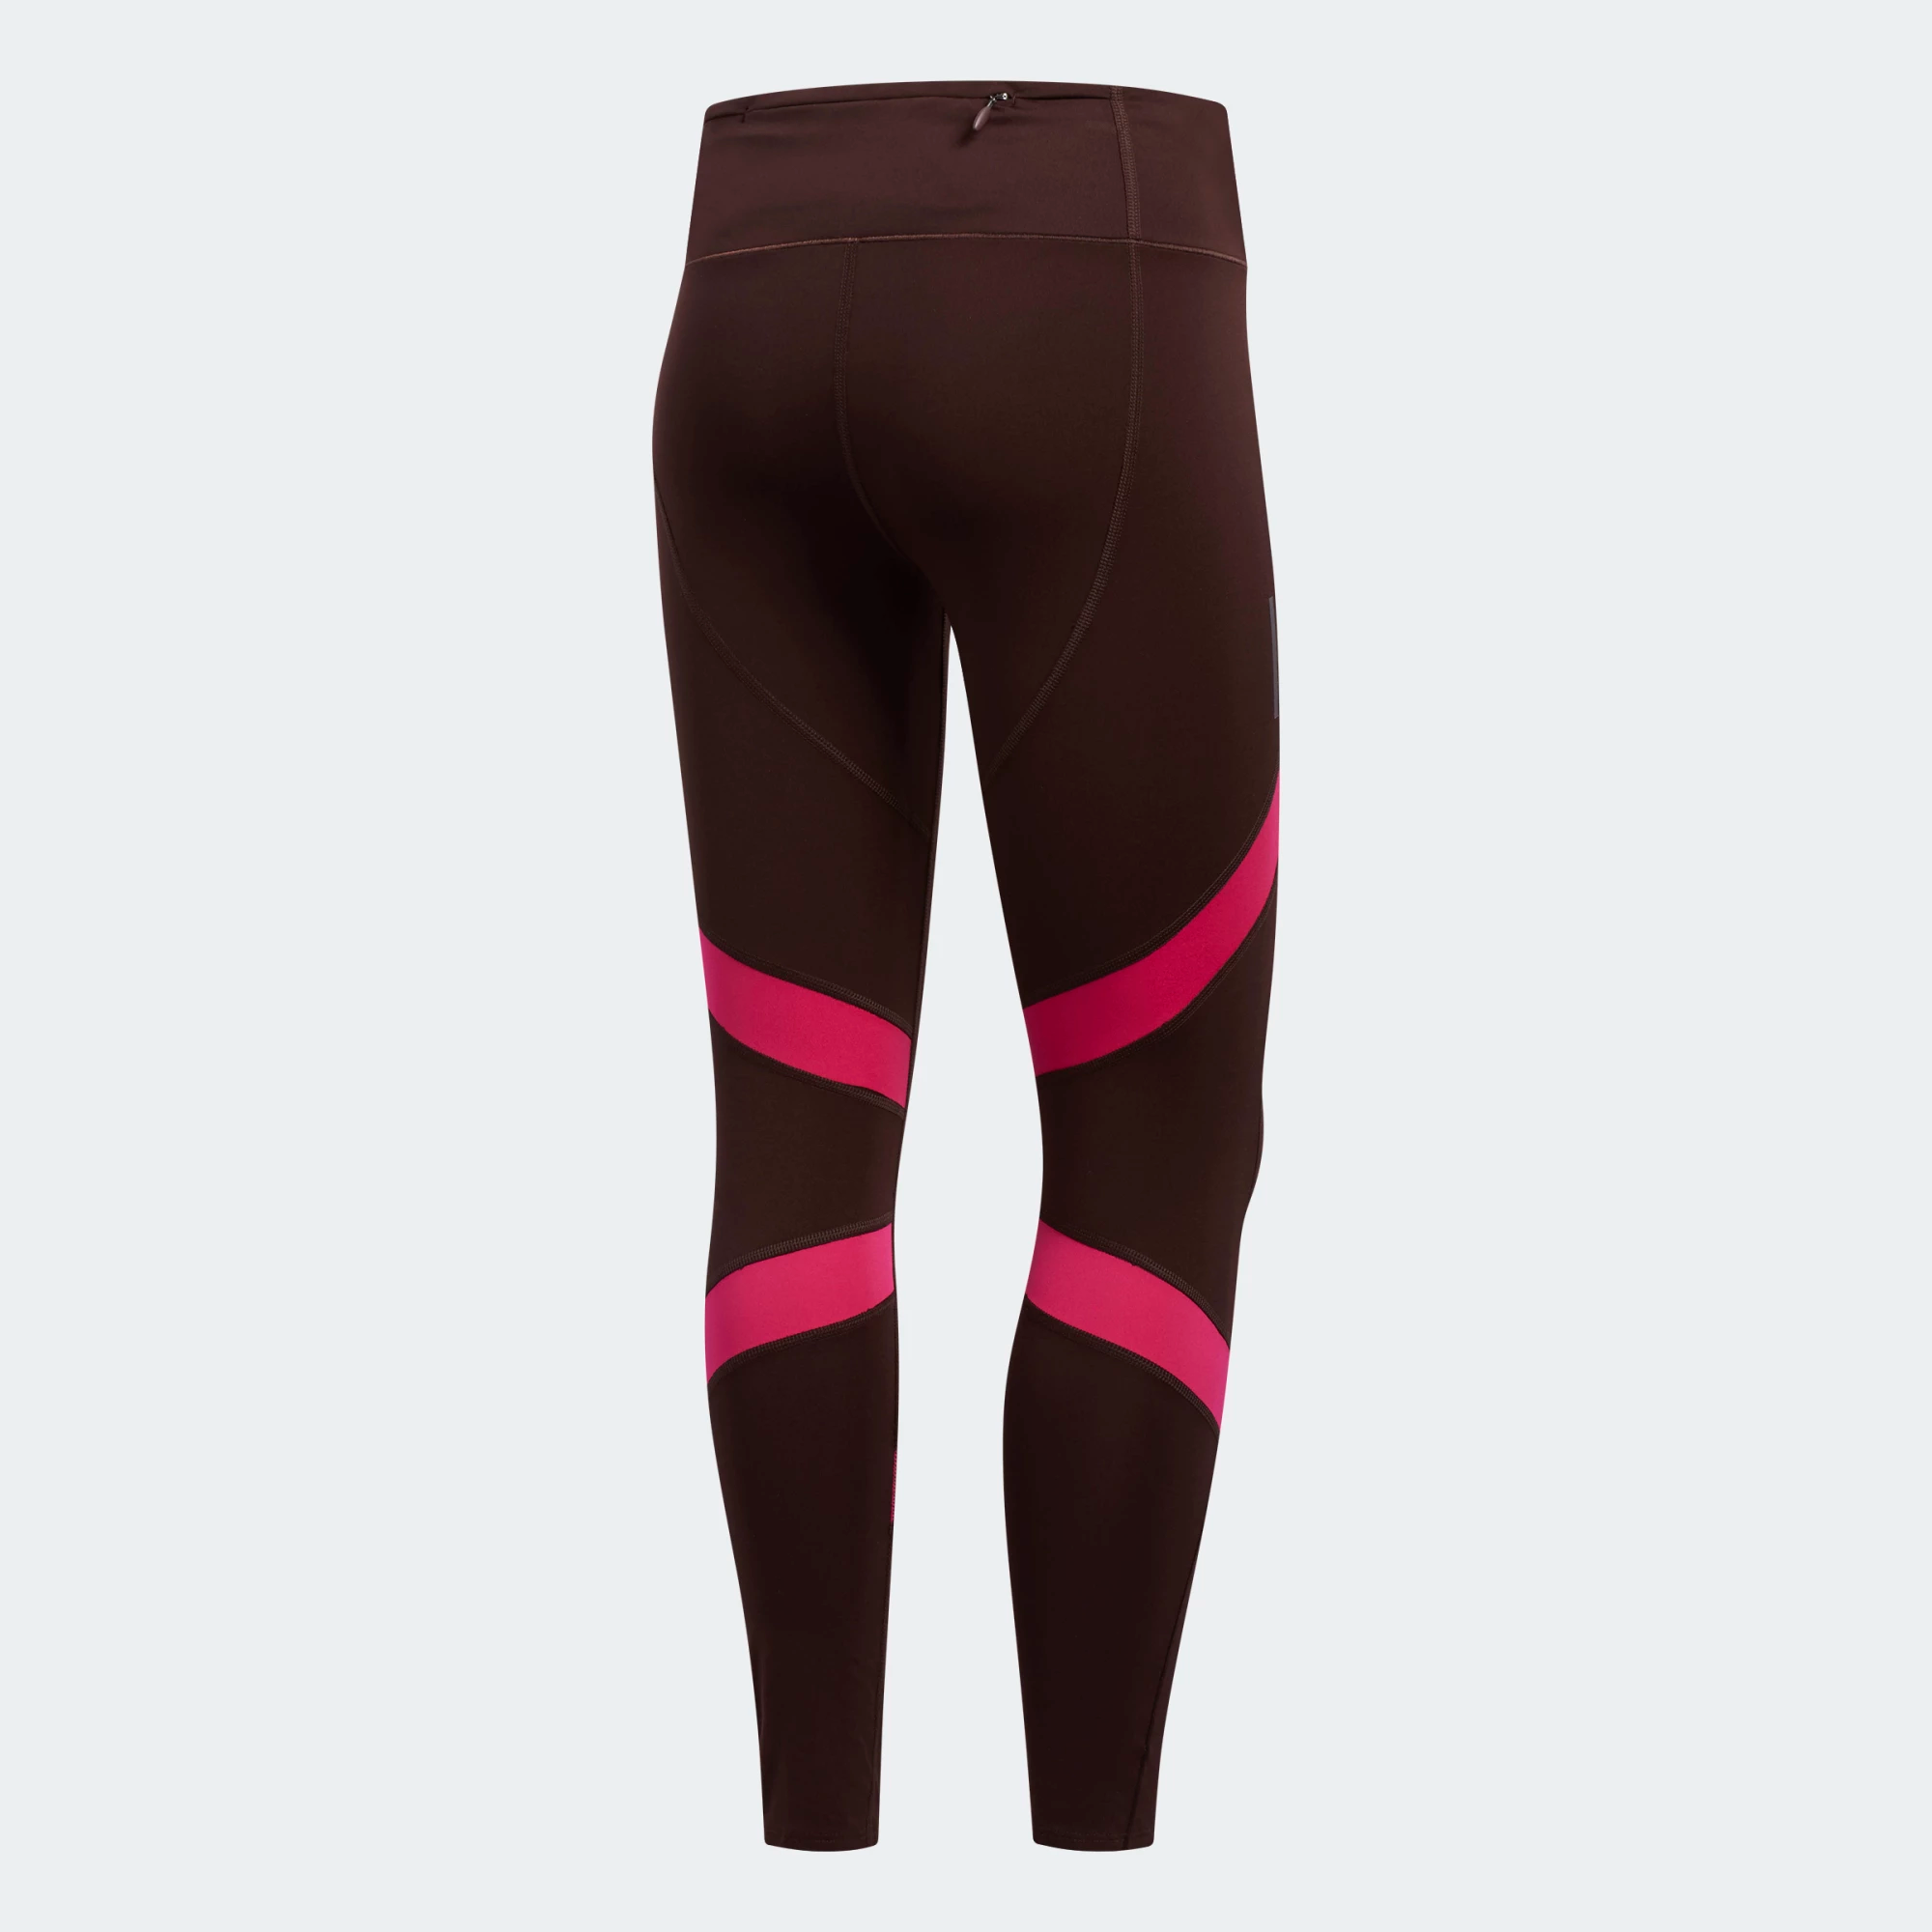 9e13443c9844c Workout Leggings With Pockets On The Side For Phone